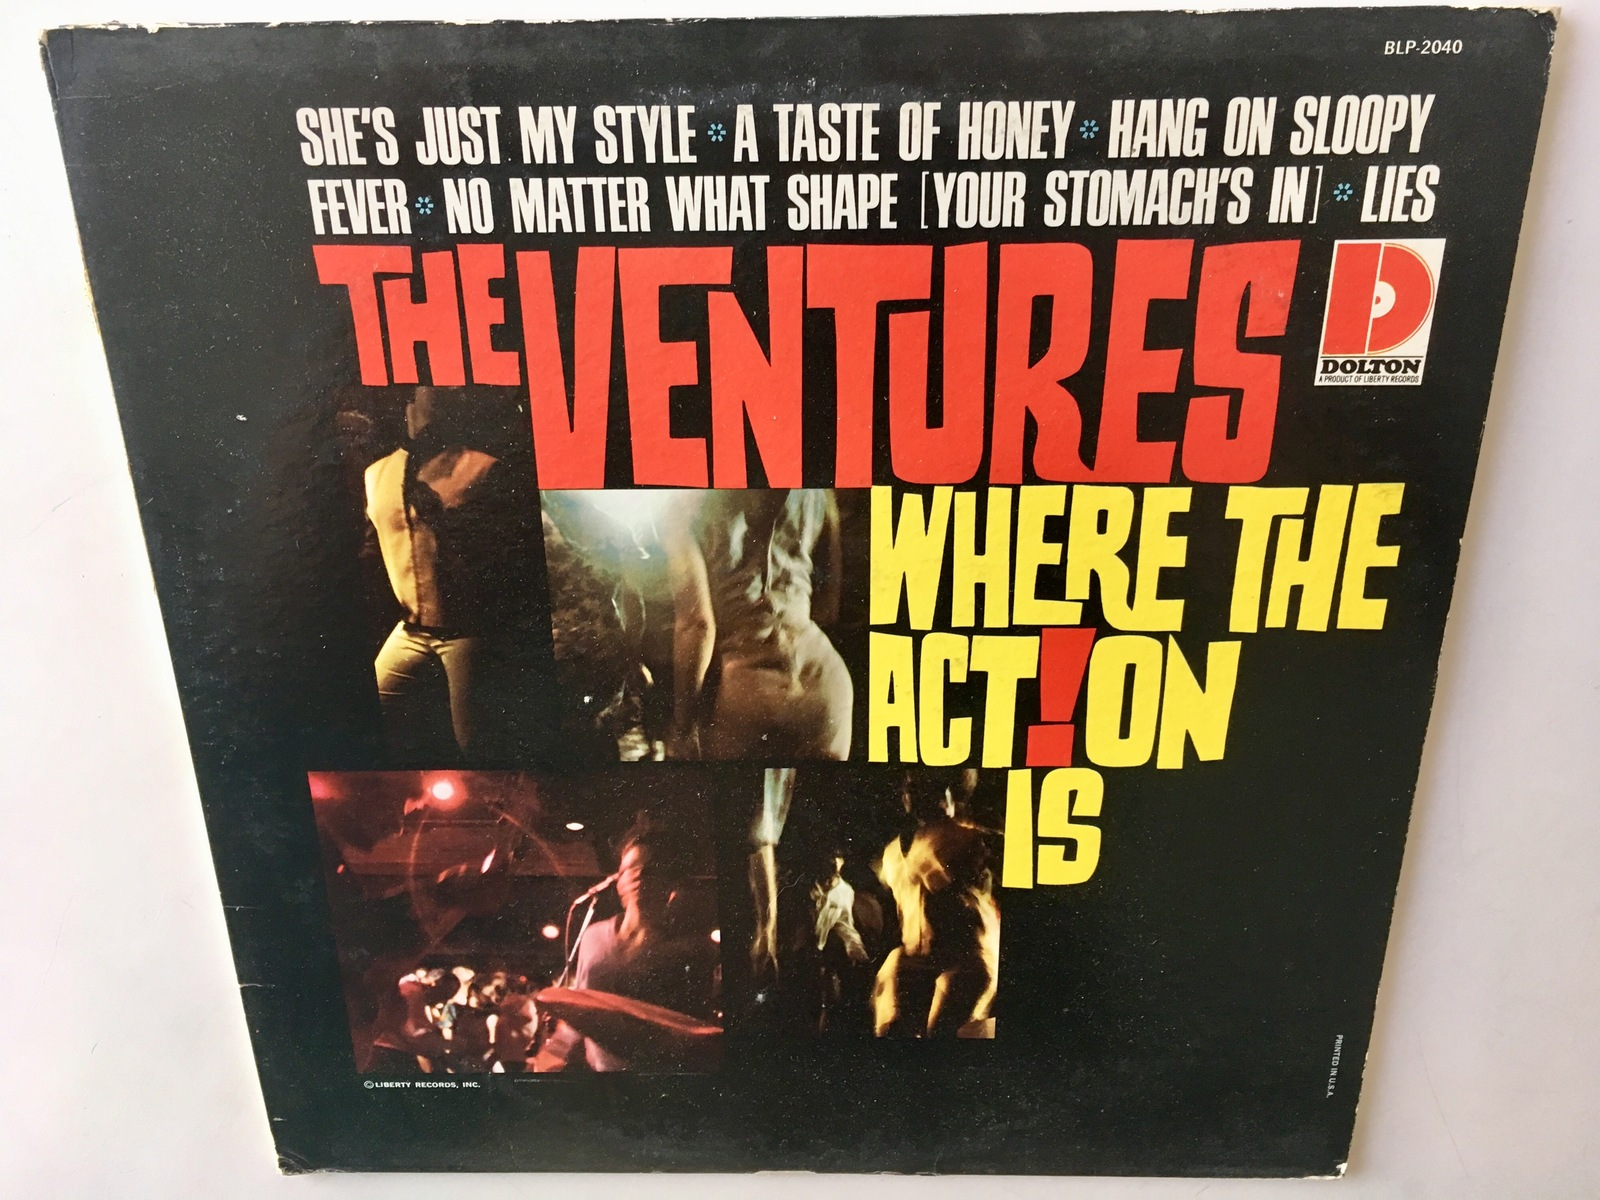 The Ventures - Where The Action Is LP Vinyl Record Album, Dolton Records